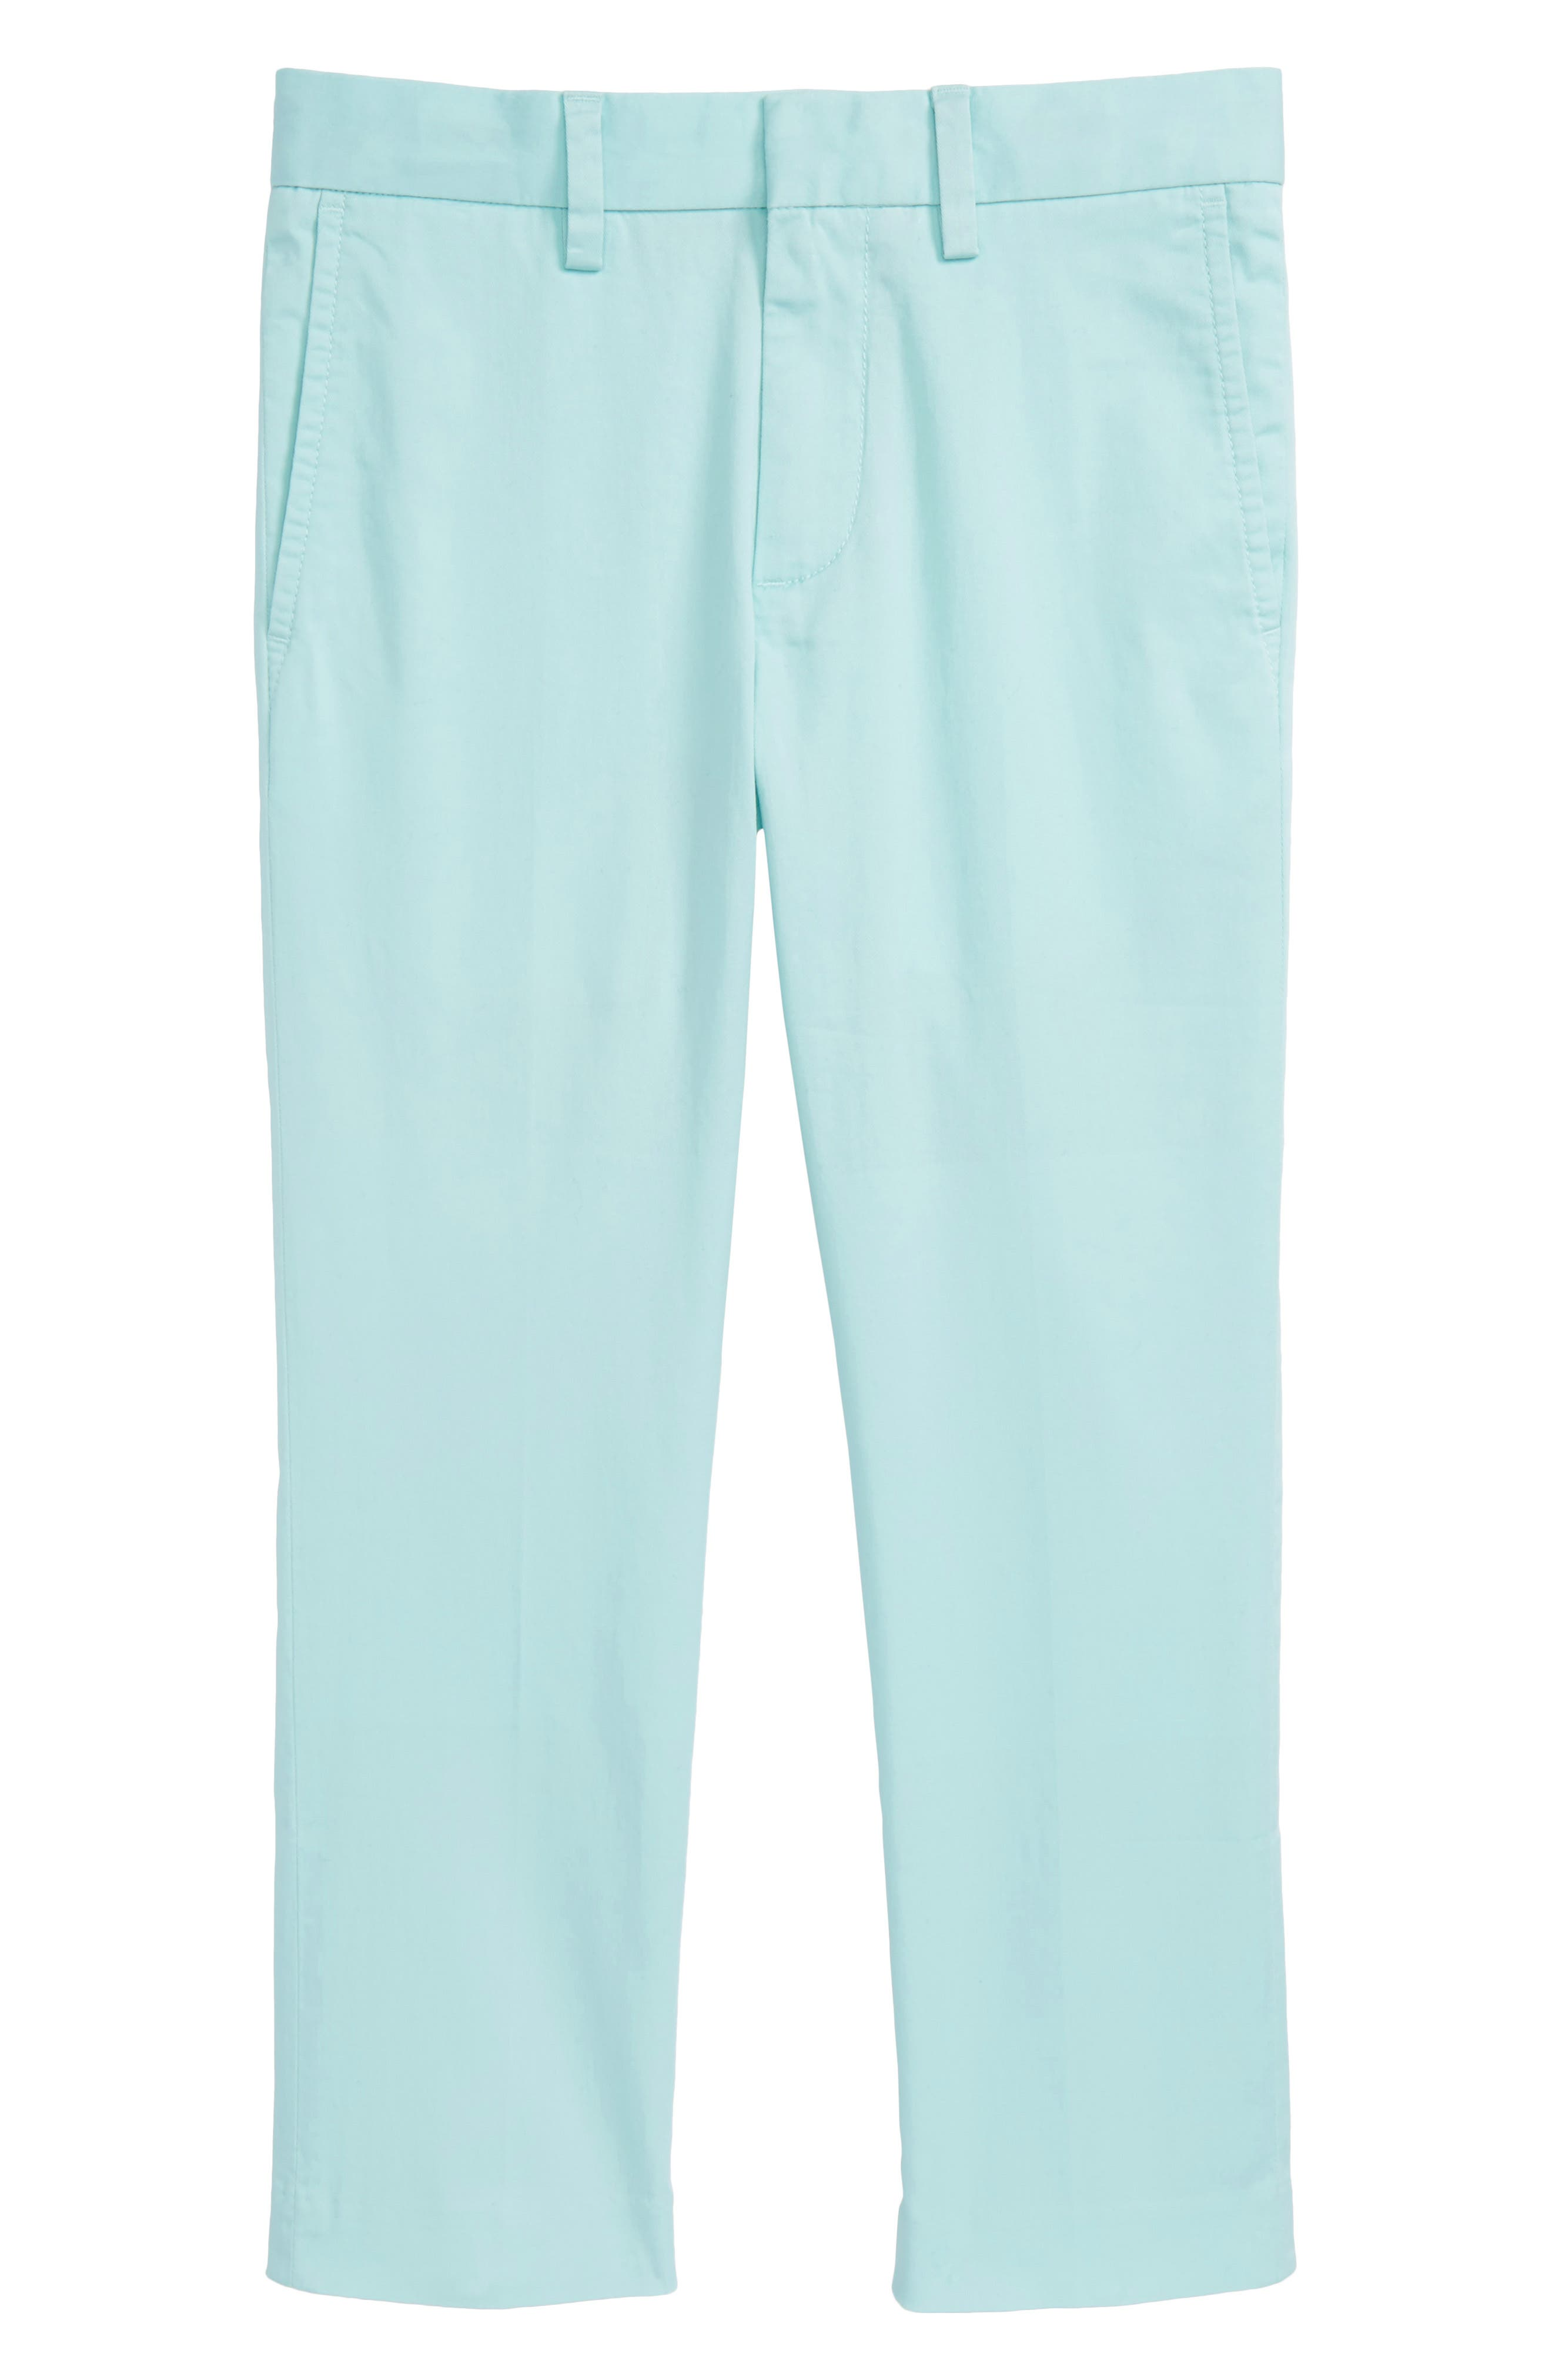 Slim Fit Stretch Chino Pants,                             Main thumbnail 1, color,                             Sundrenched Aqua